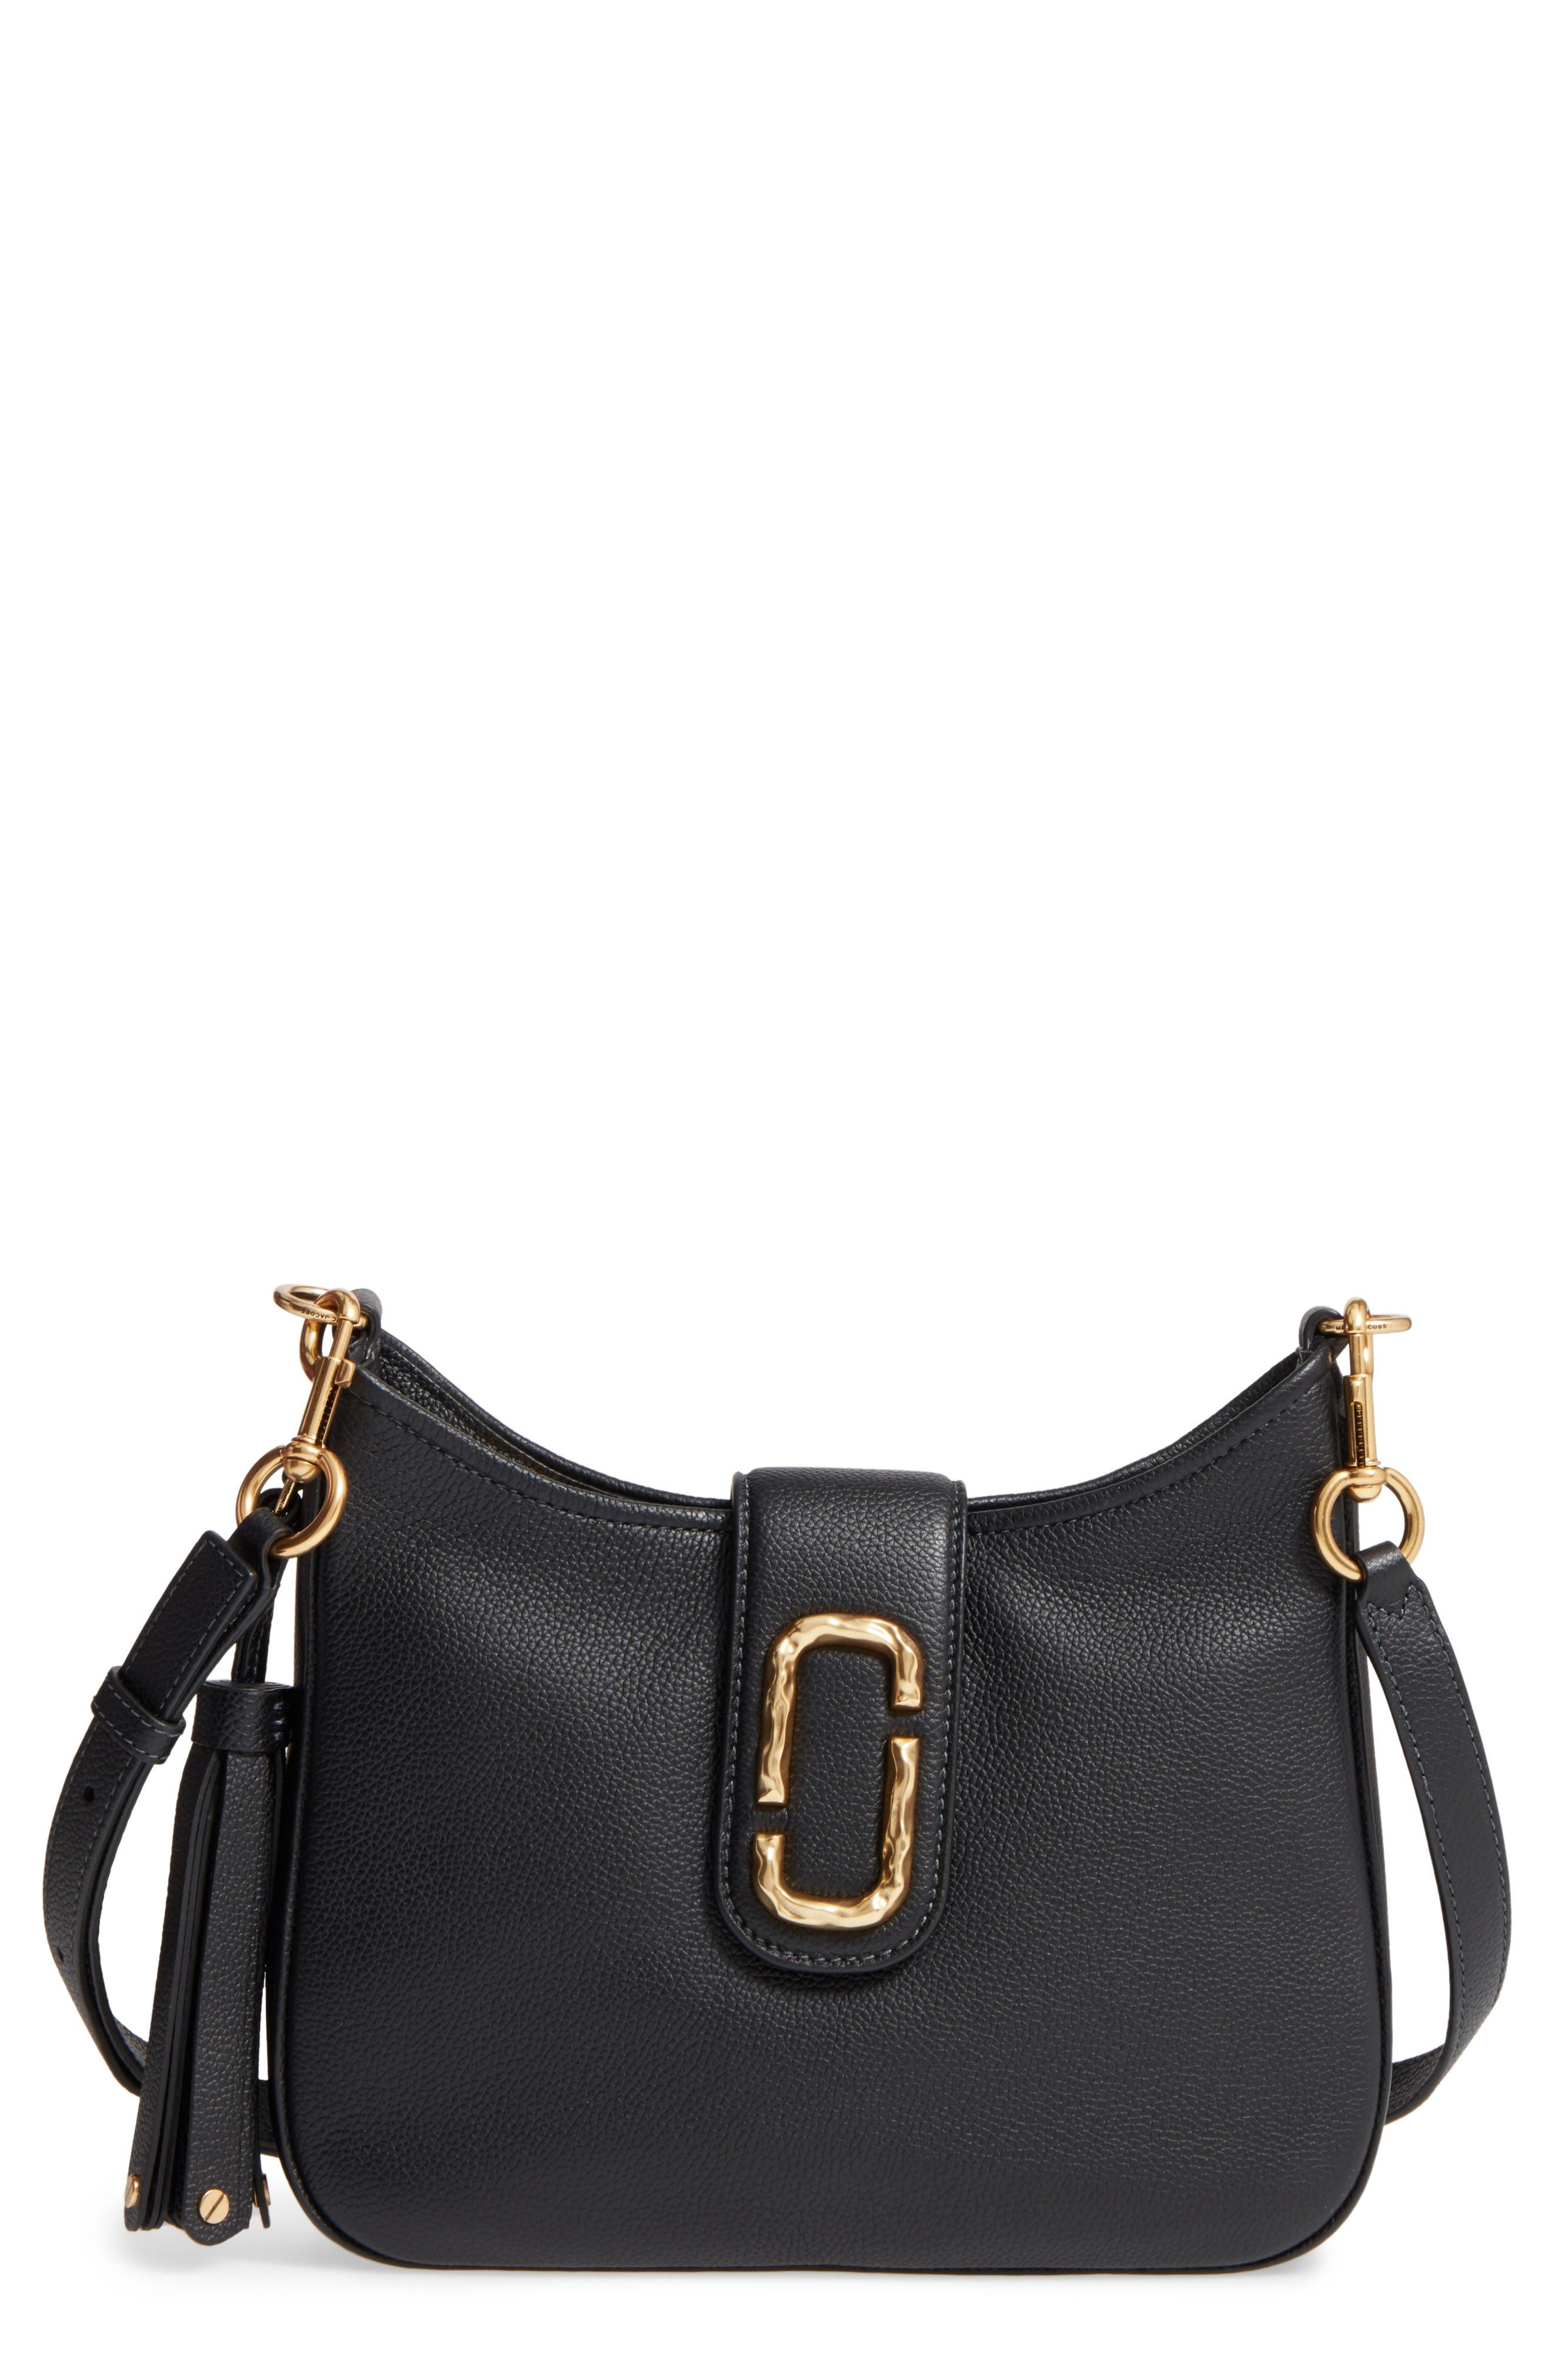 Alternate Image 1 Selected - MARC JACOBS Small Interlock Leather Hobo